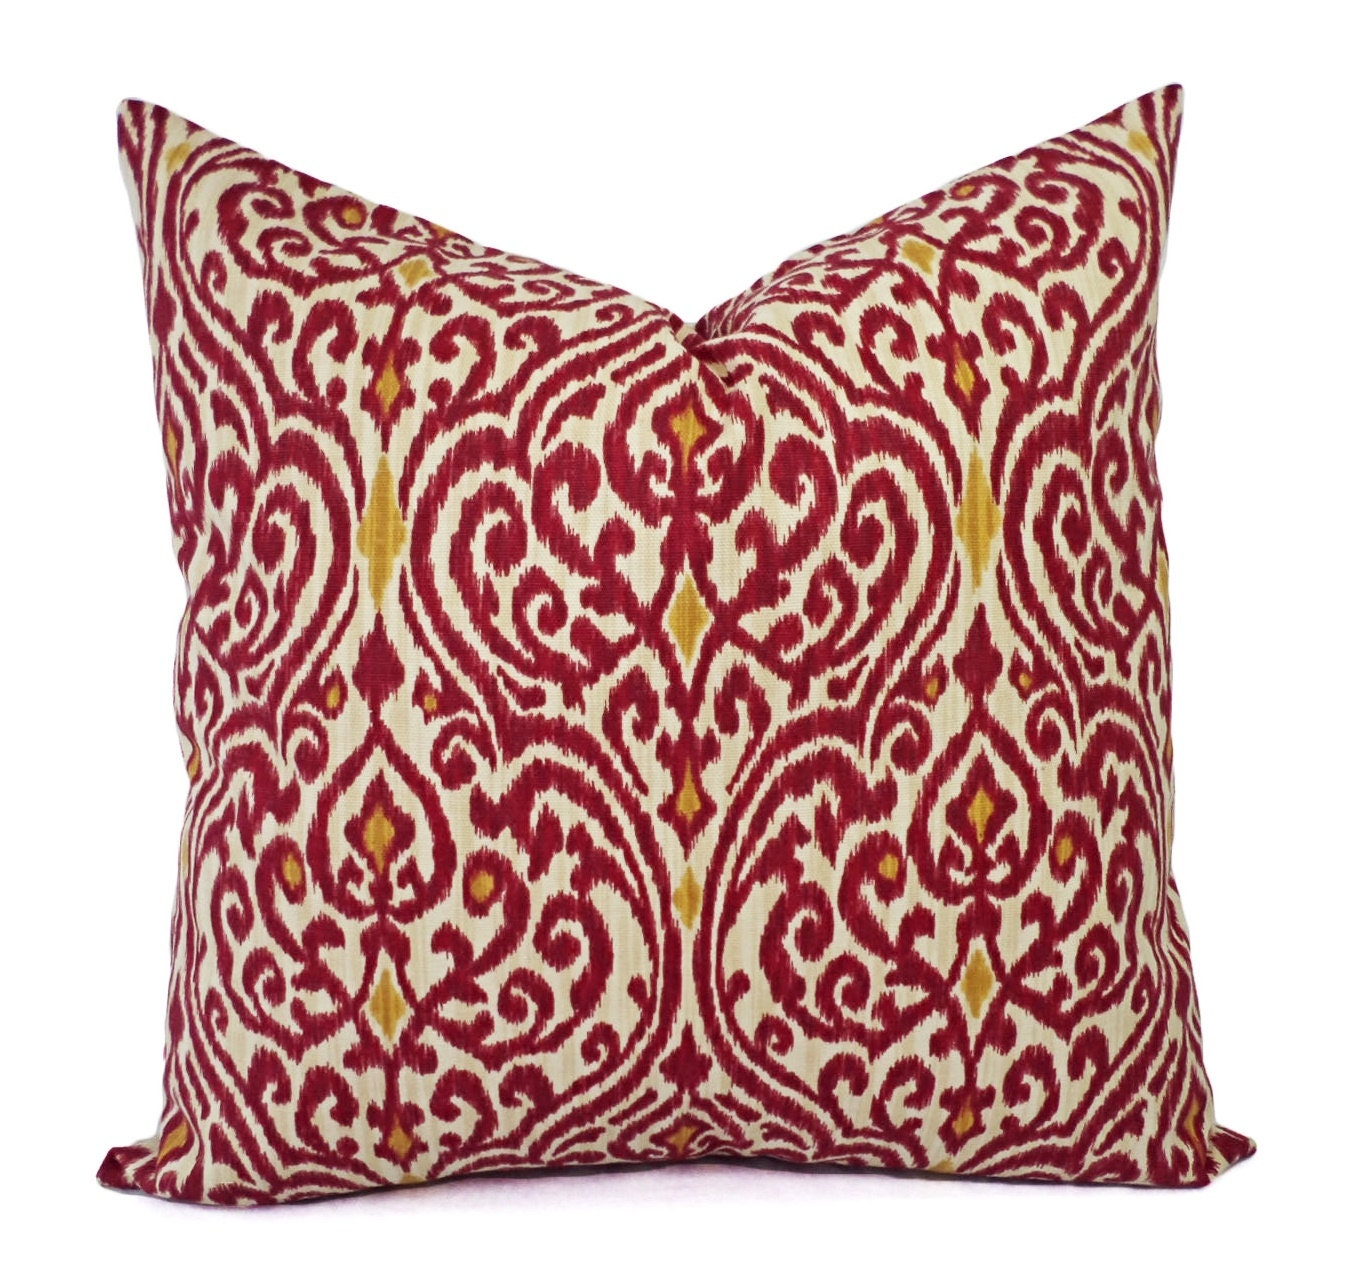 Throw Pillows Red And Gold : Two Ikat Pillow Covers Red and Gold Ikat Throw Pillows Red